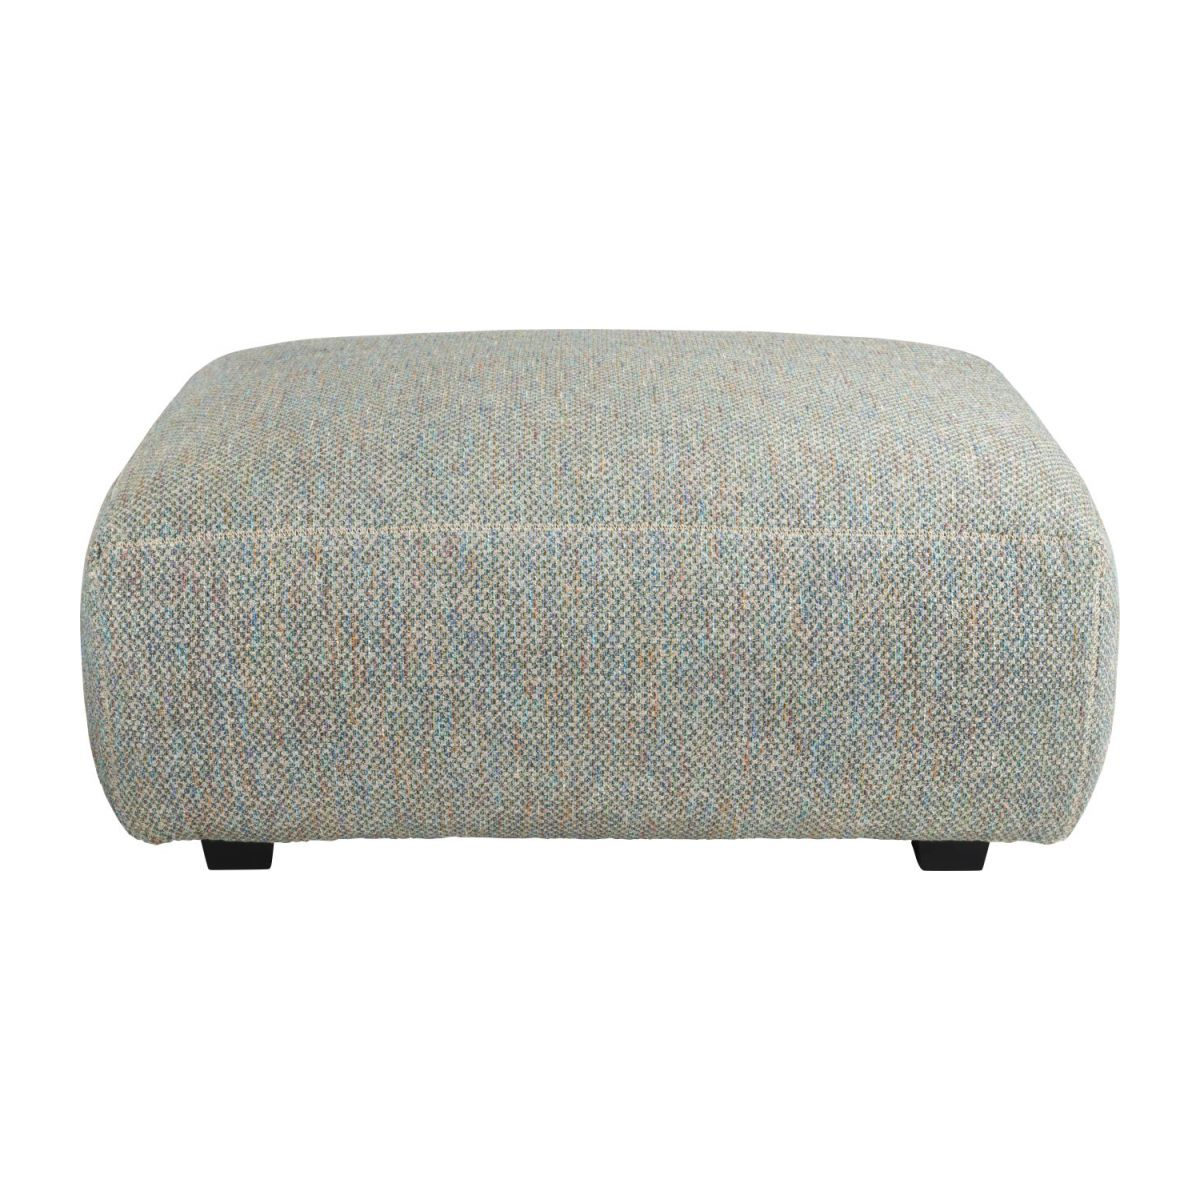 Footstool in Bellagio fabric, organic green n°2